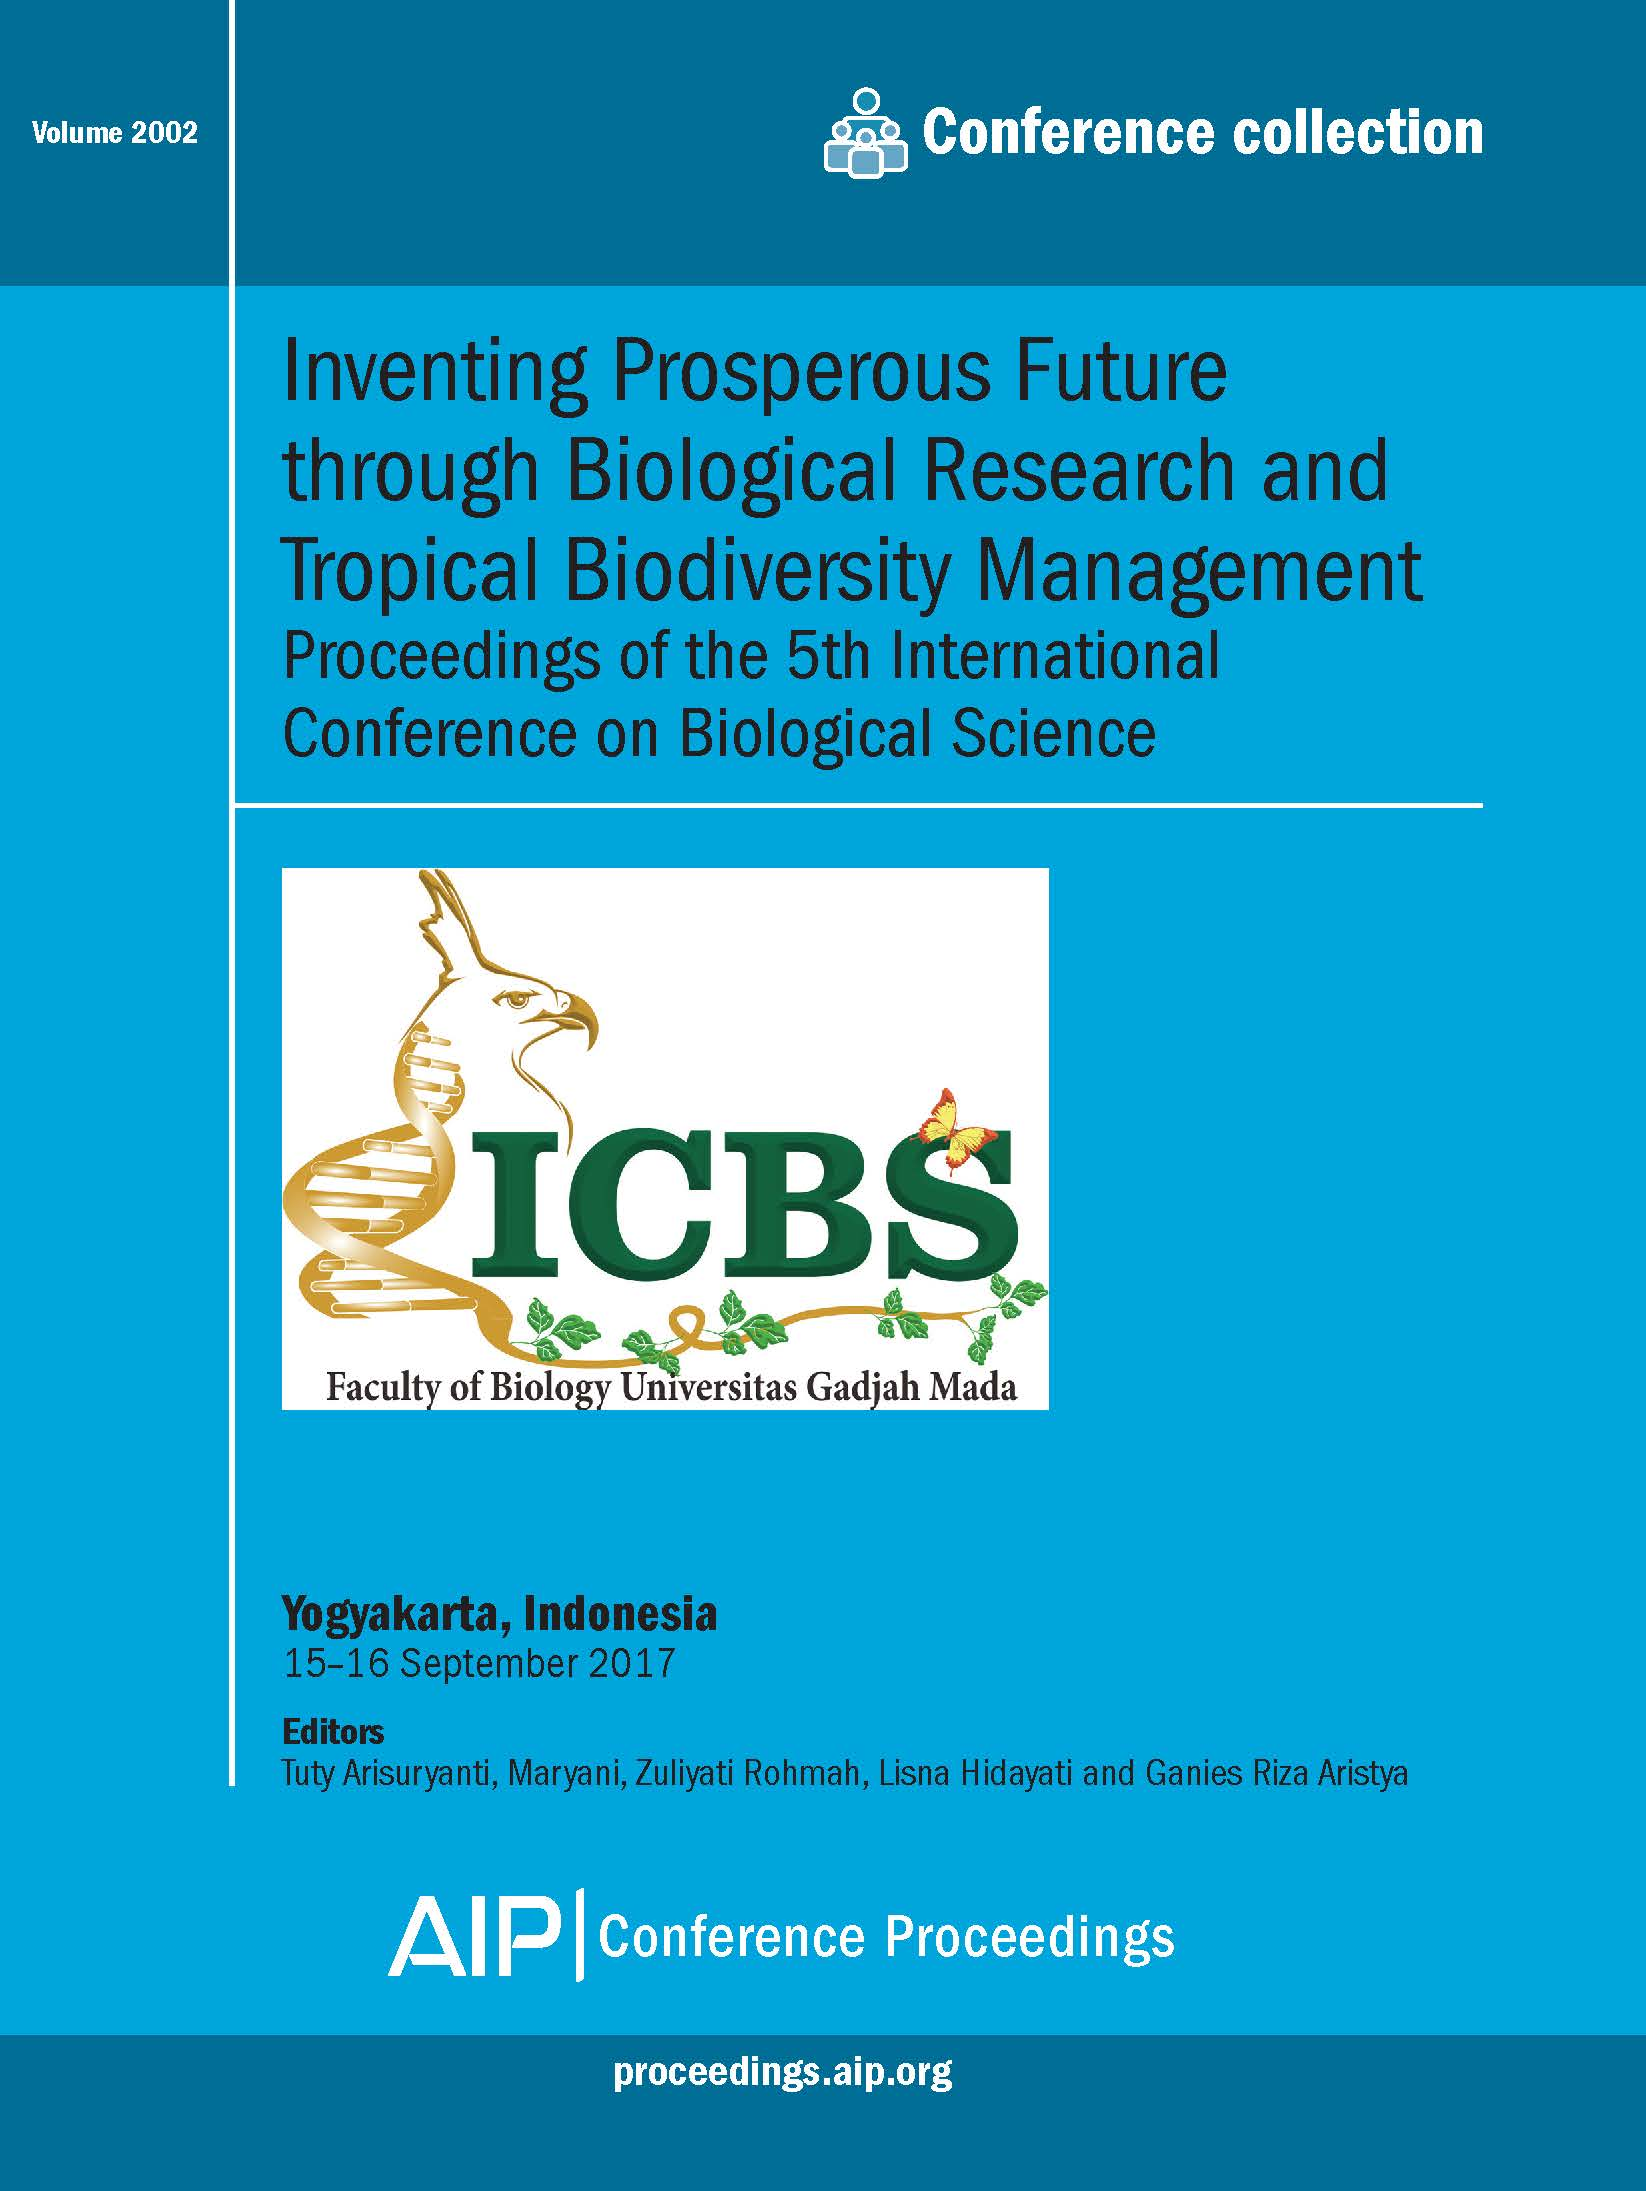 Volume 2002: Inventing Prosperous Future through Biological Research